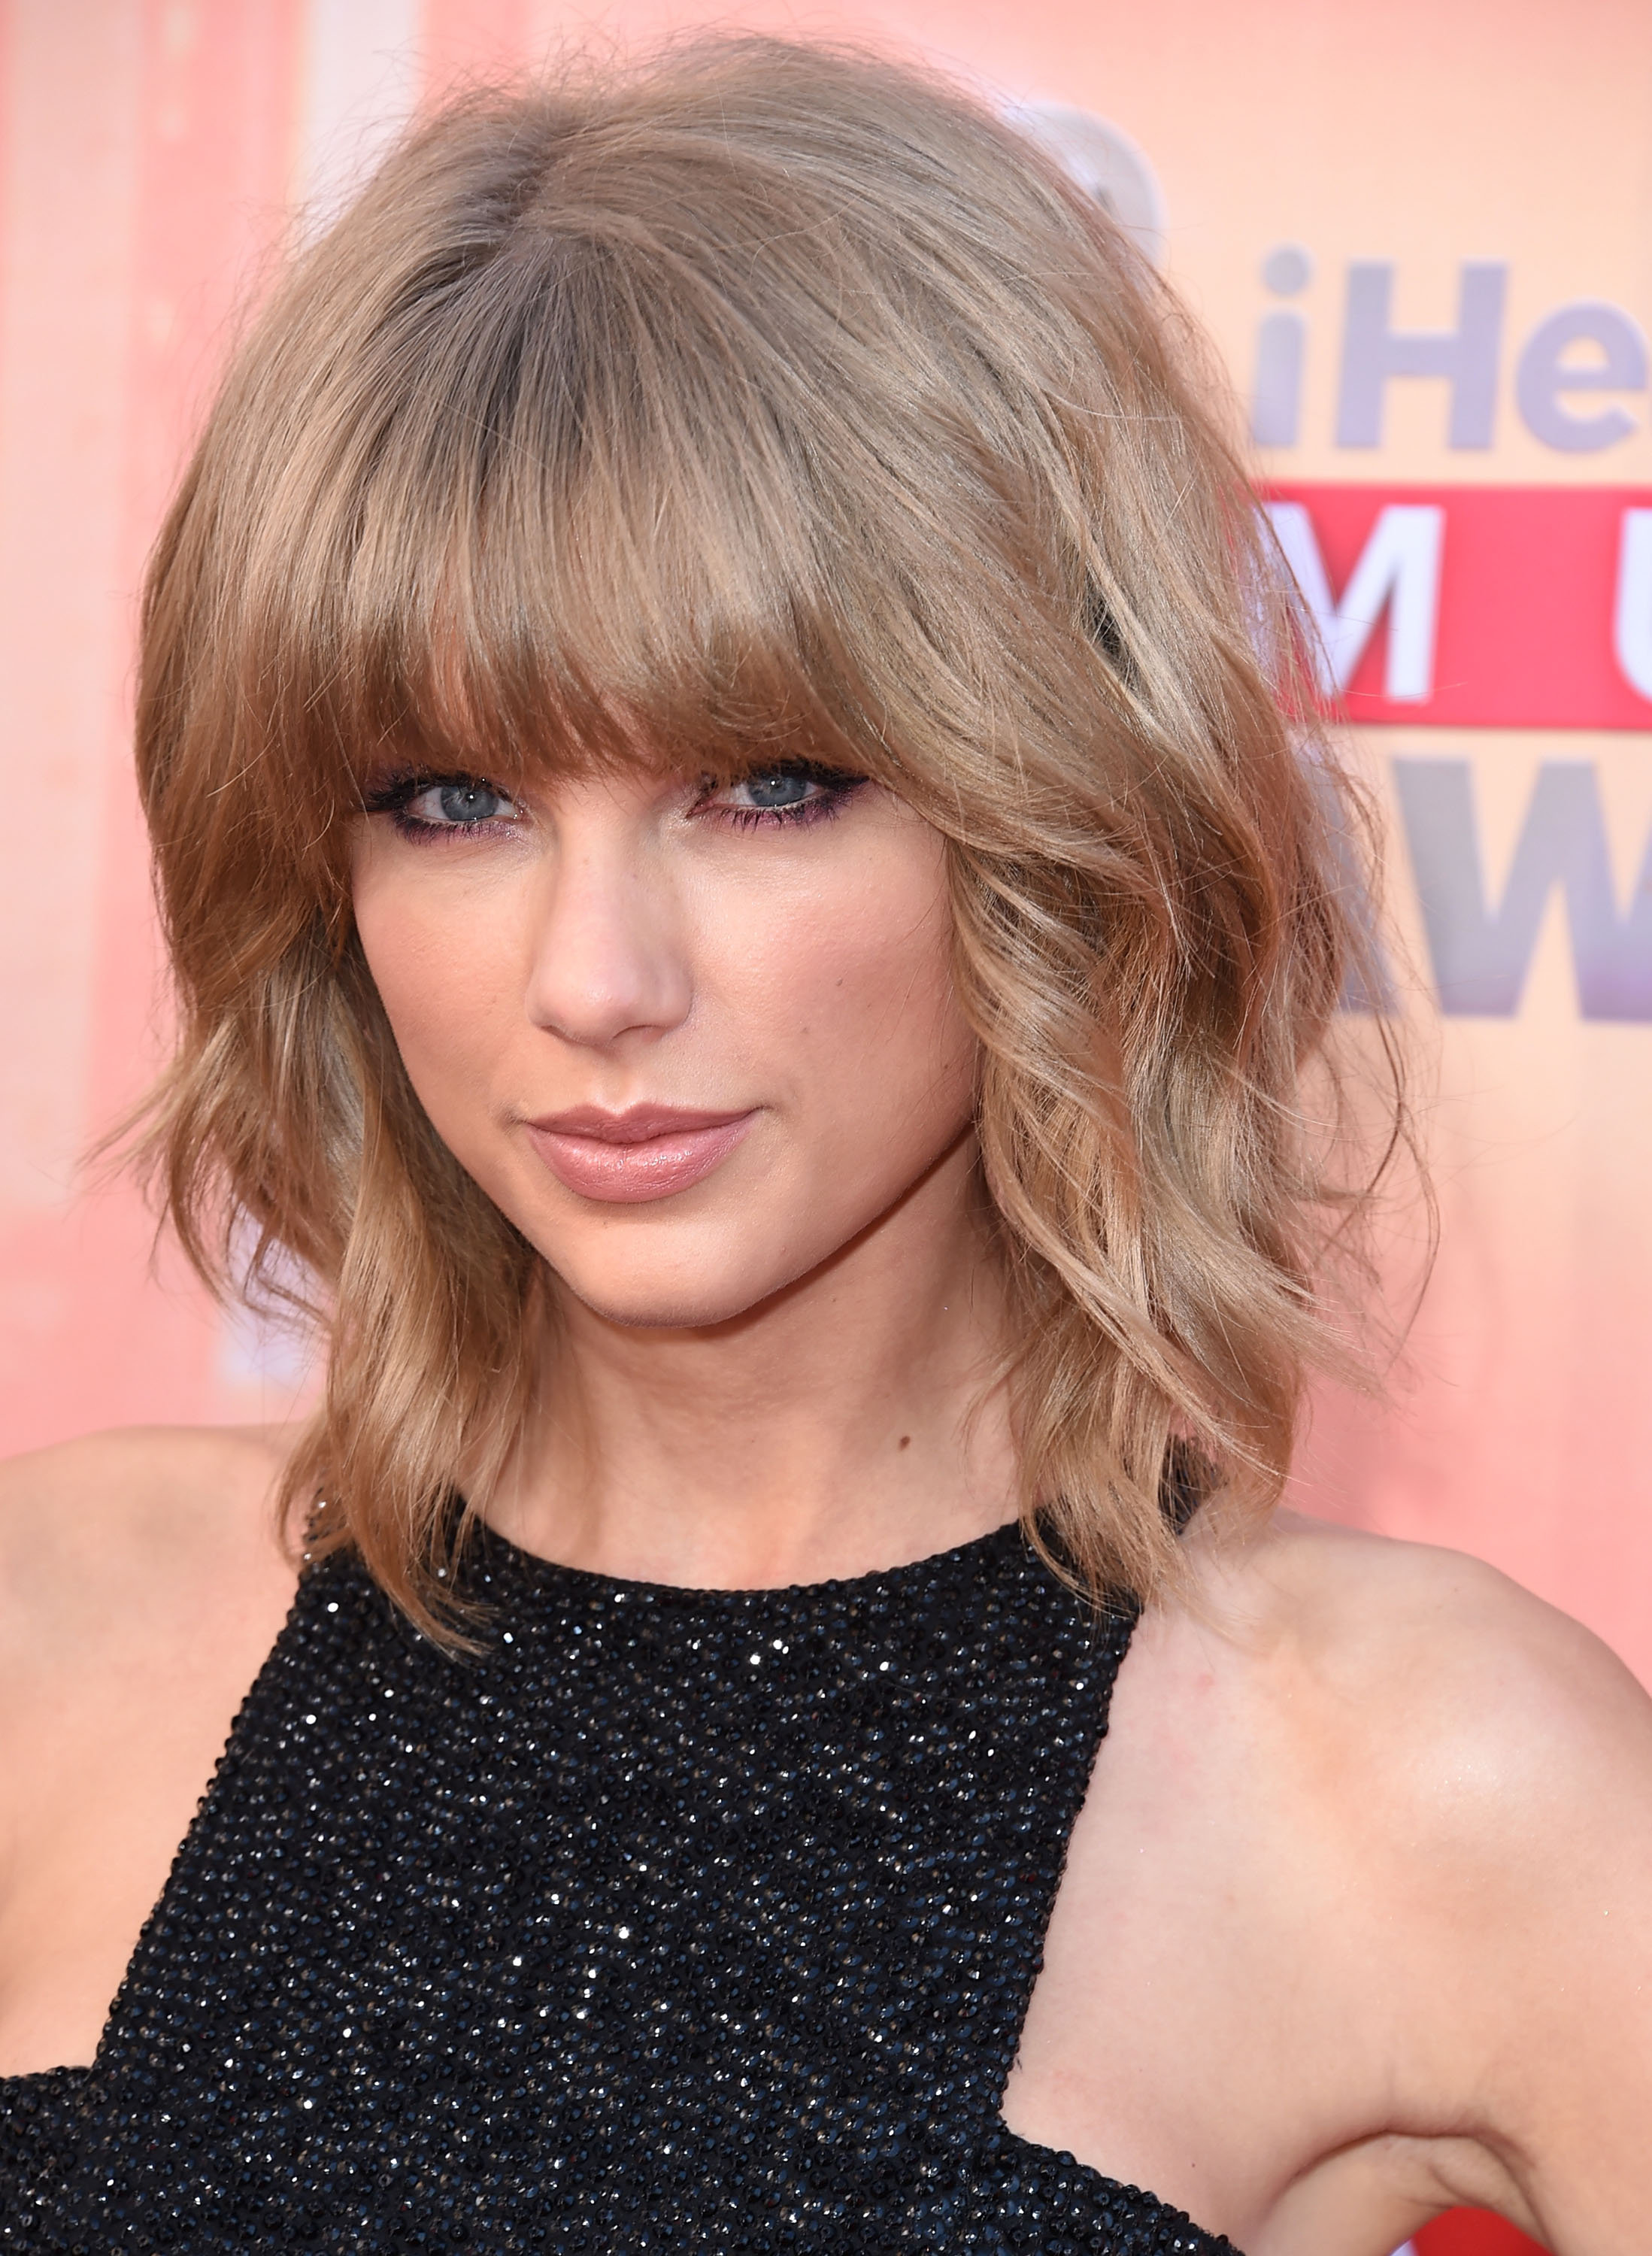 Taylor Swift arrives at the 2015 iHeartRadio Music Awards